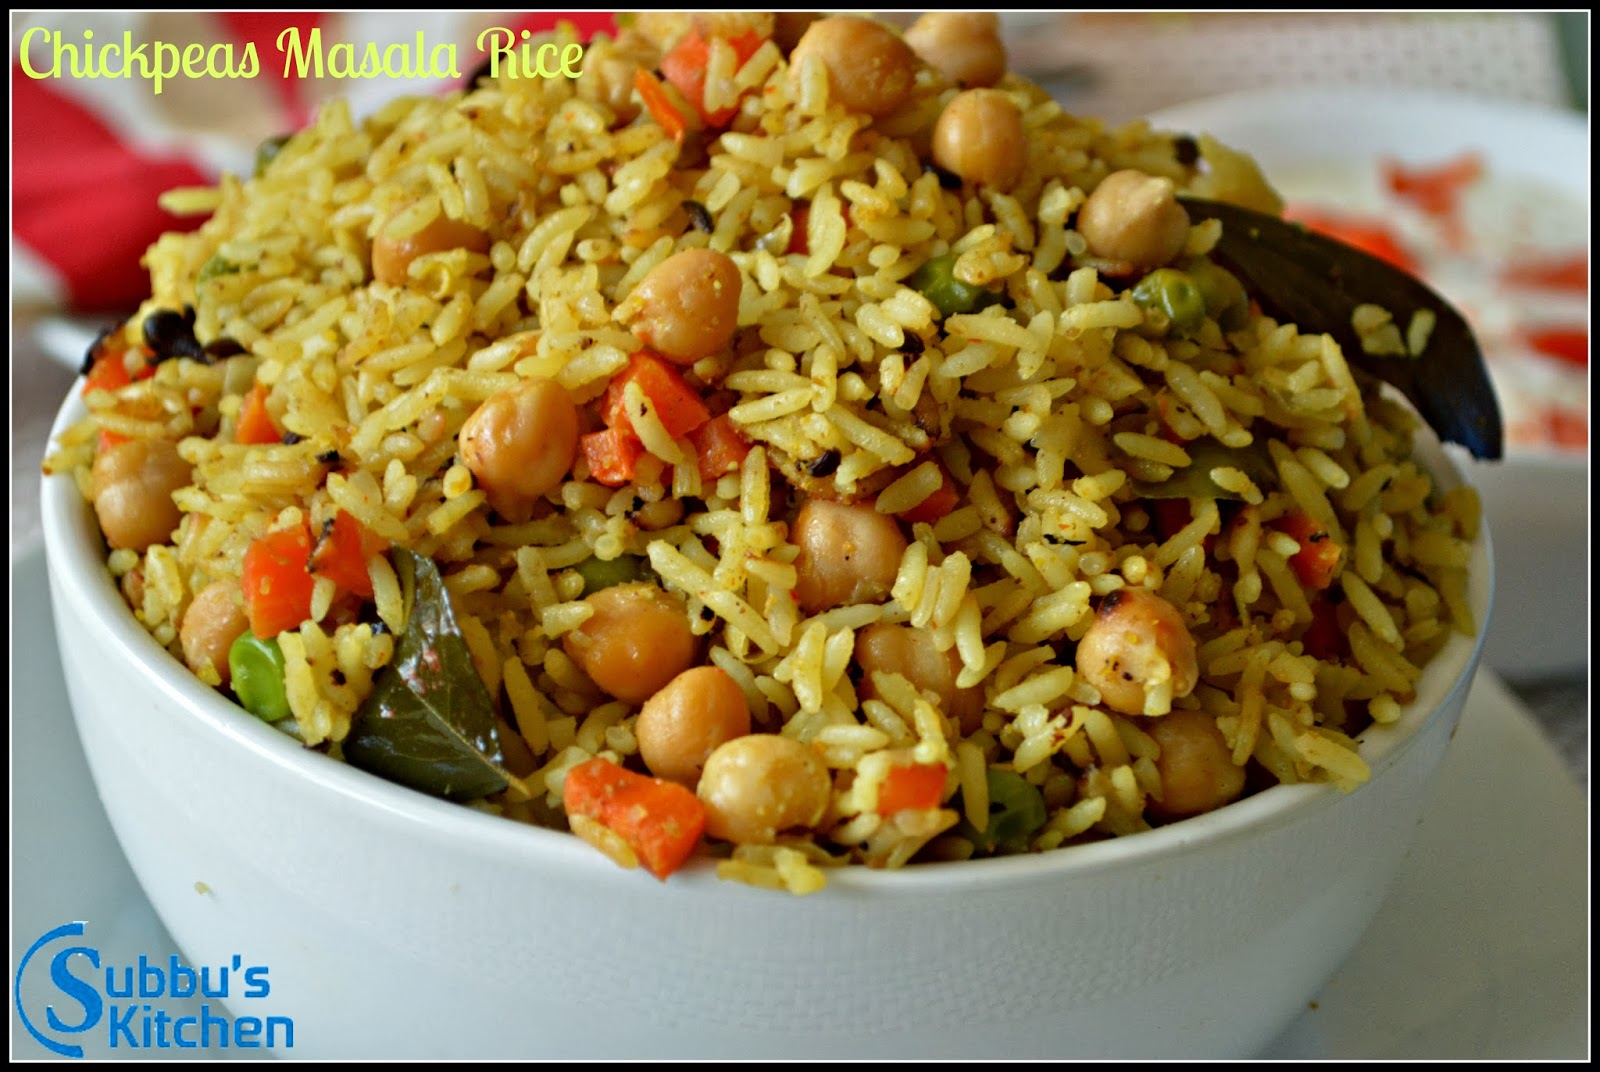 Chickpeas Masala Rice